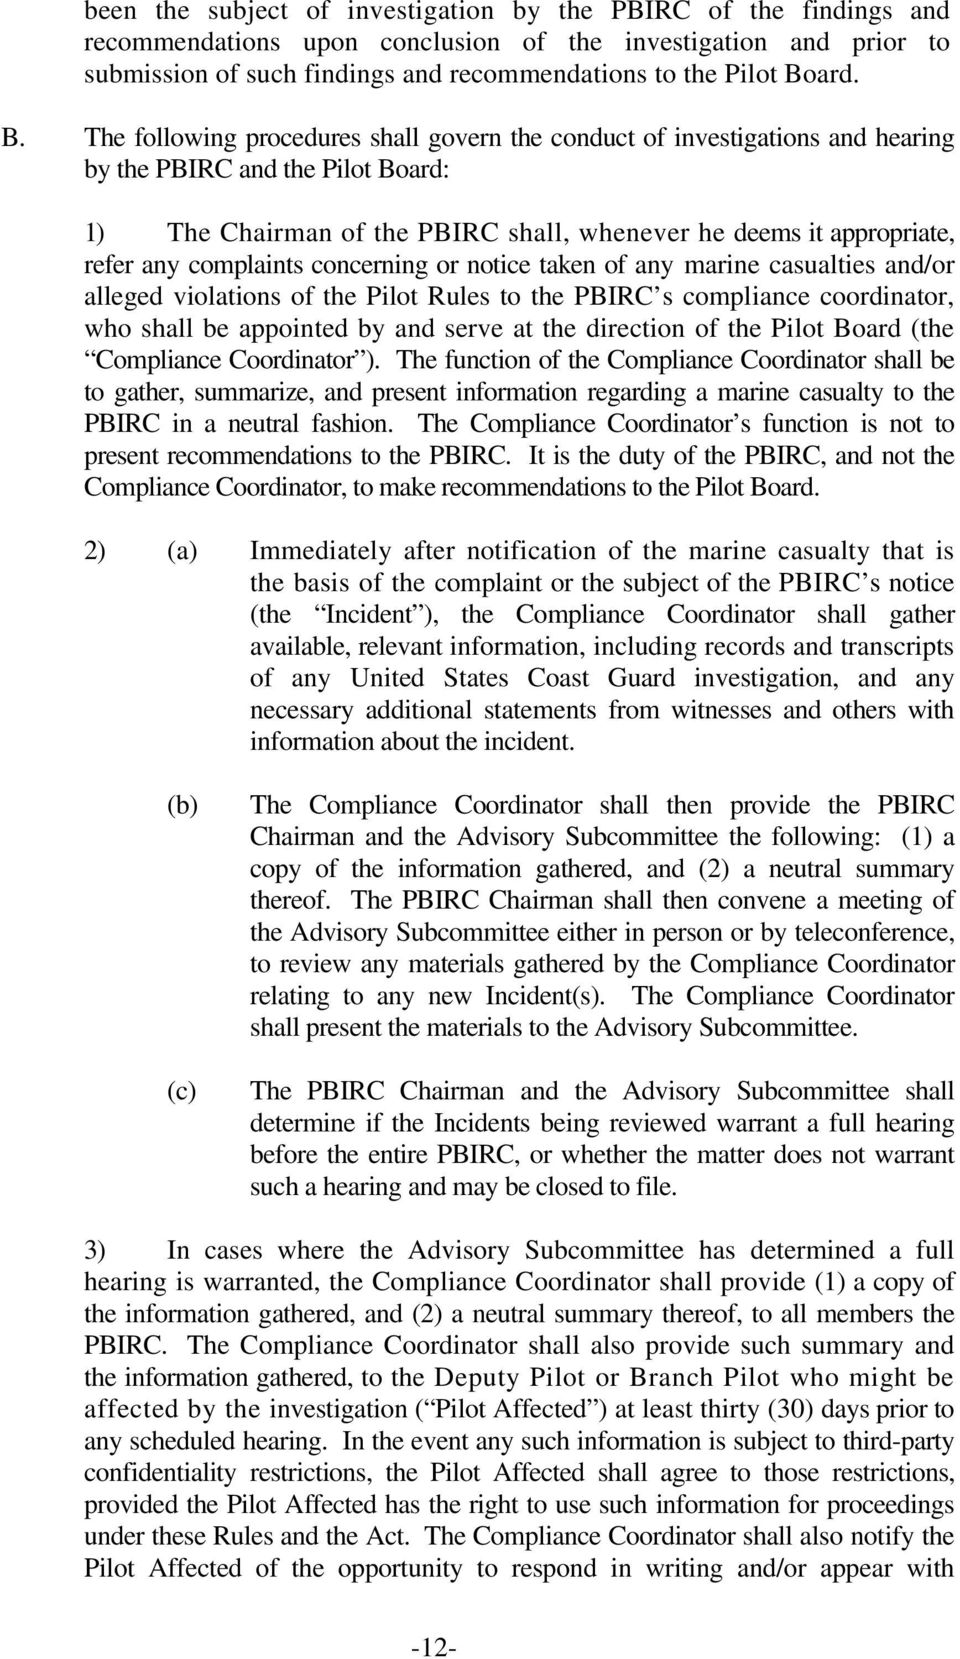 complaints concerning or notice taken of any marine casualties and/or alleged violations of the Pilot Rules to the PBIRC s compliance coordinator, who shall be appointed by and serve at the direction